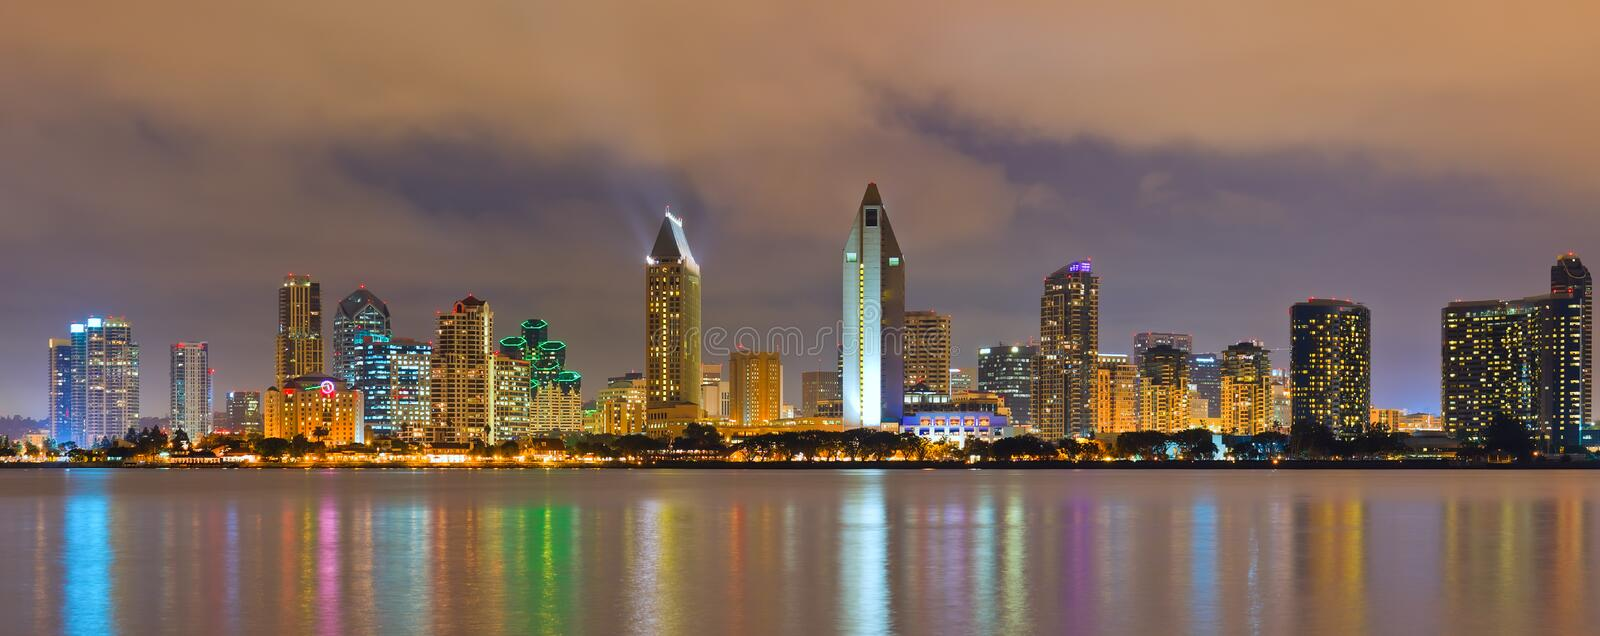 Download San Diego stock photo. Image of evening, dock, cloudy - 19094078